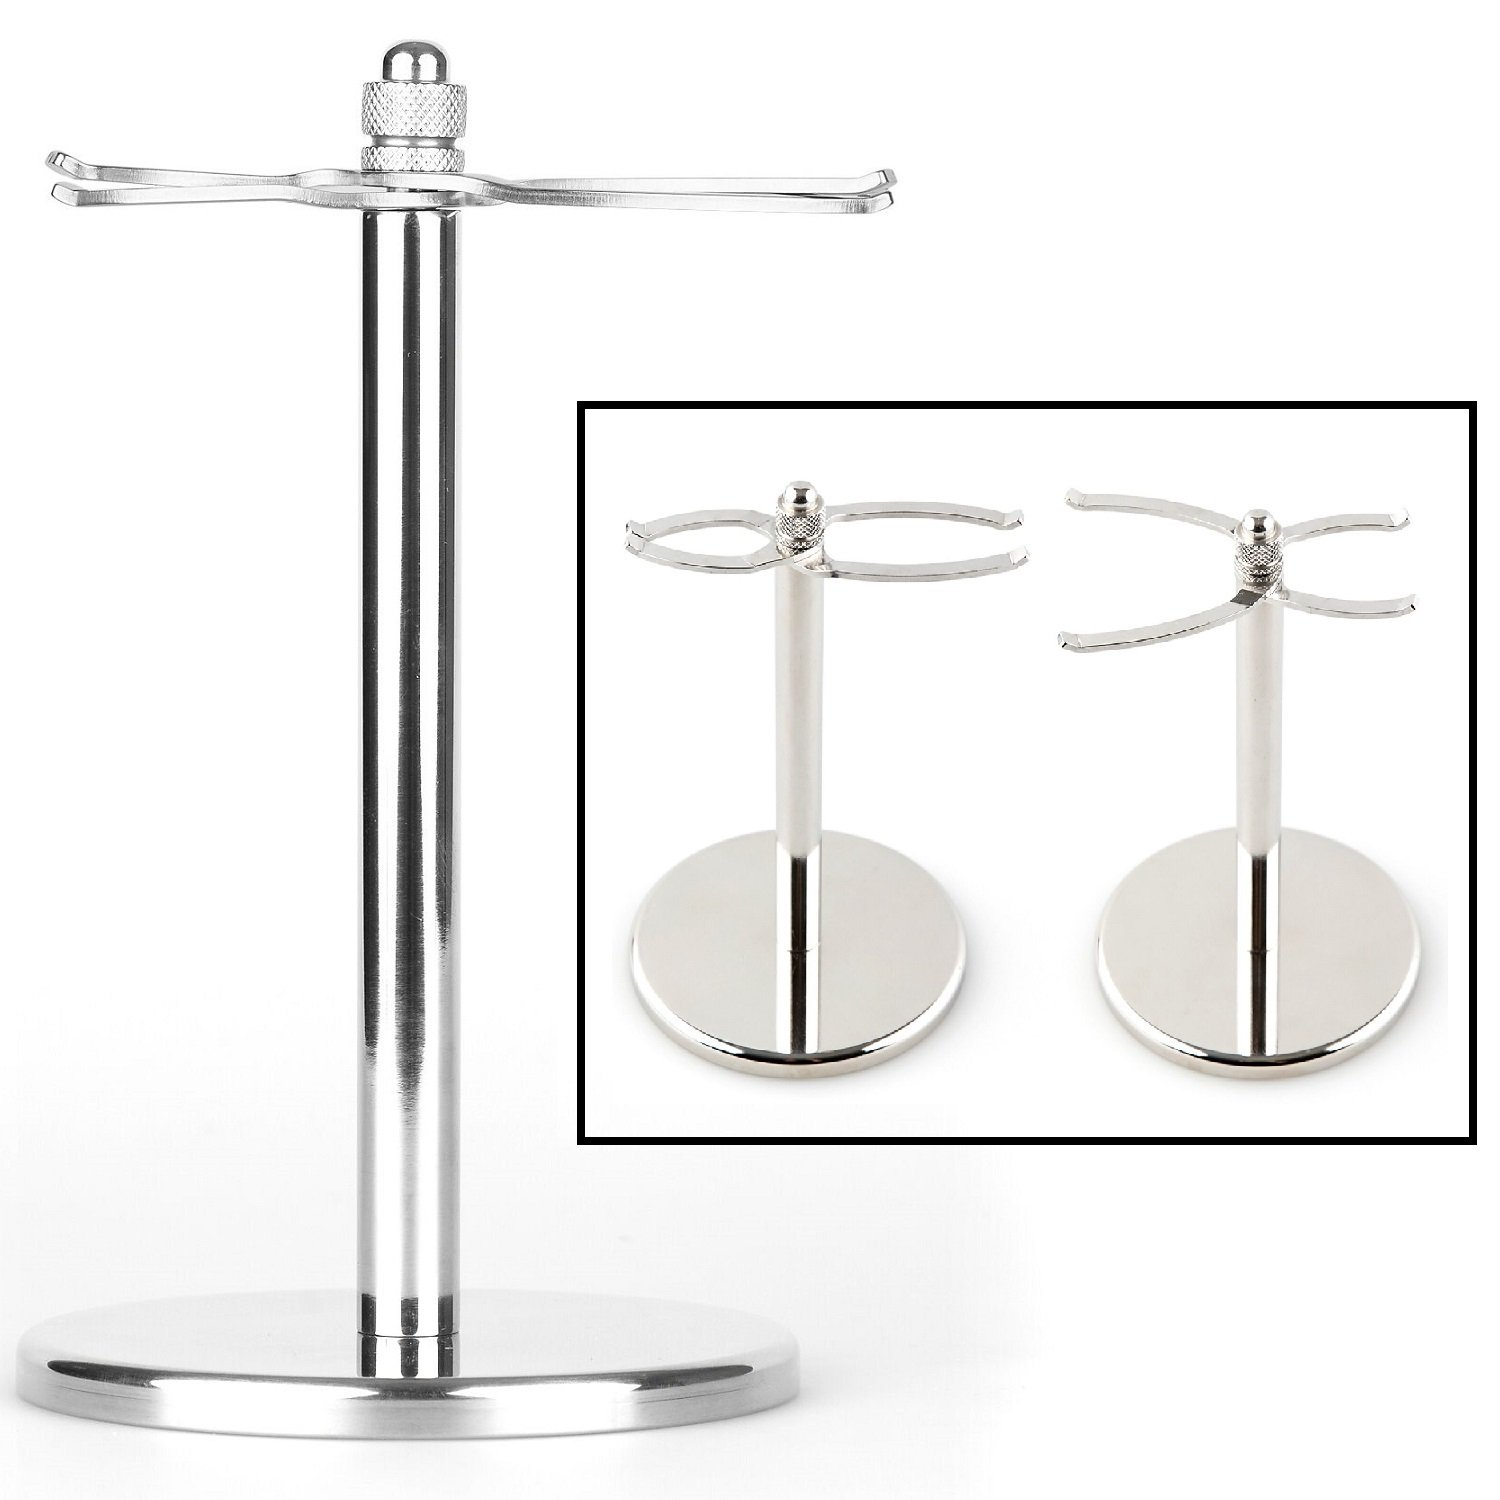 Fendrihan Universal Adjustable Shaving Brush and Safety Razor Stand (Fits Brushes from 22 mm to 43 mm) Stainless Steel